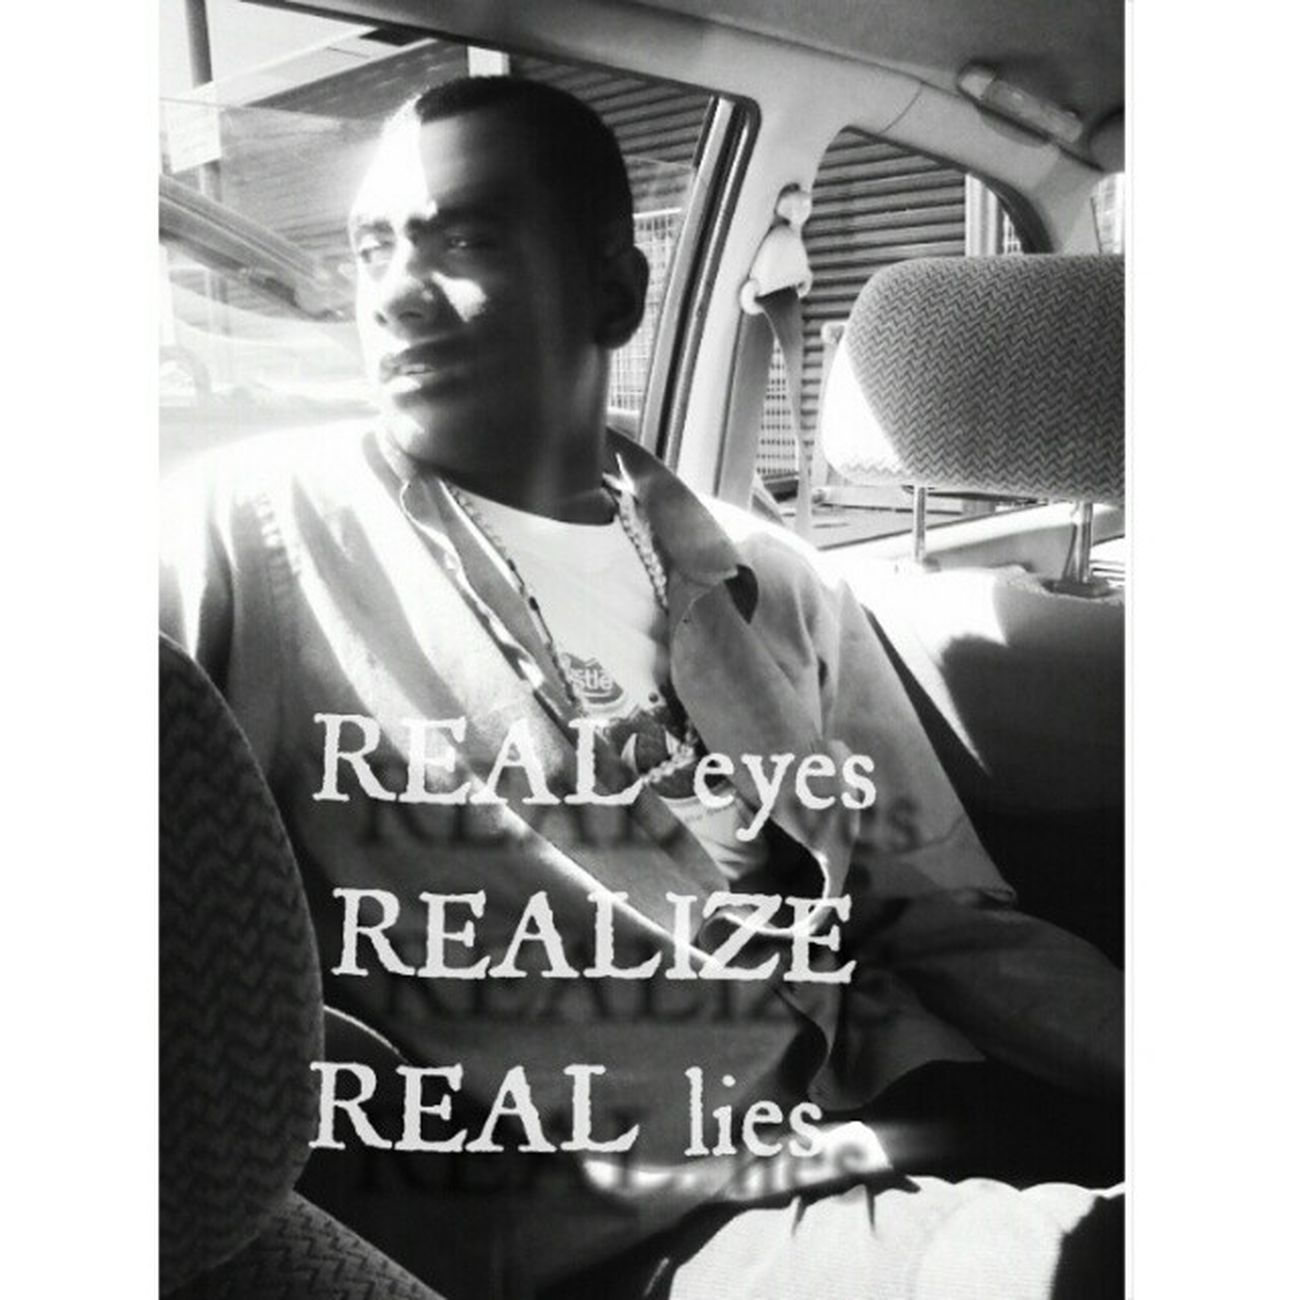 Real eyes, REALIZE,Real lies . Johnworry 